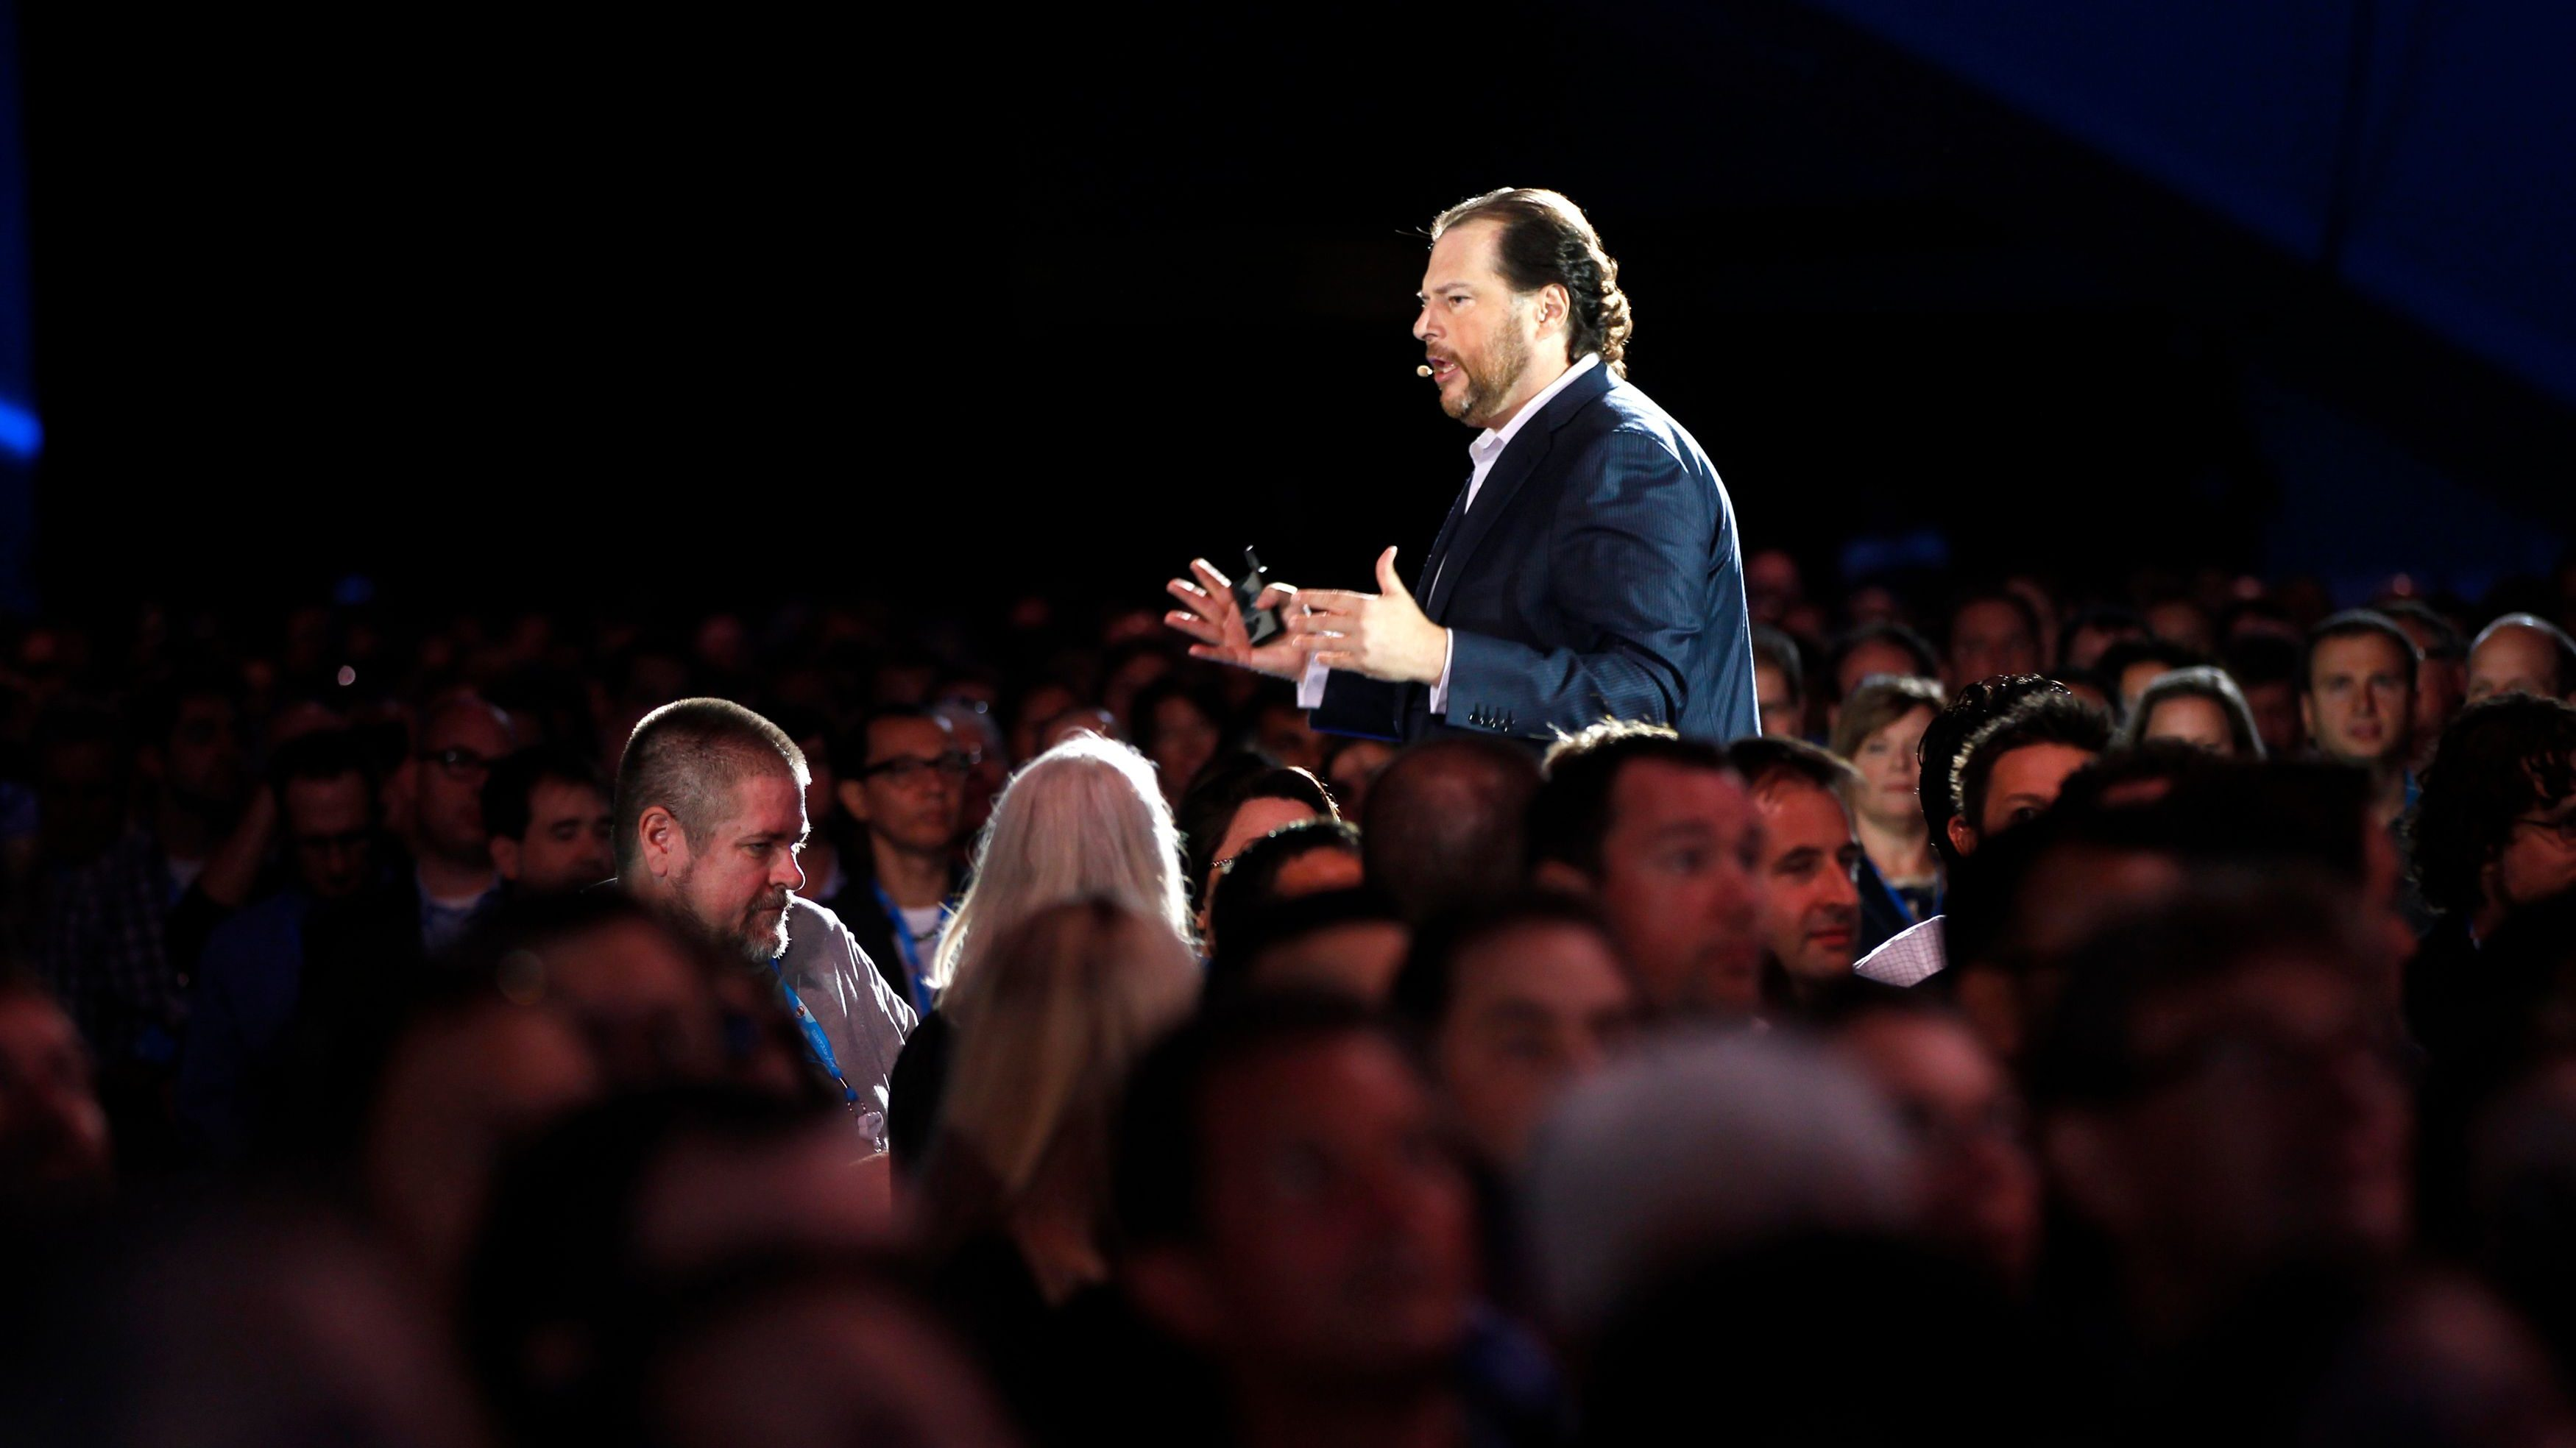 Salesforce CEO Marc Benioff speaks to the crowd during the Dreamforce event in San Francisco, California September 19, 2012.